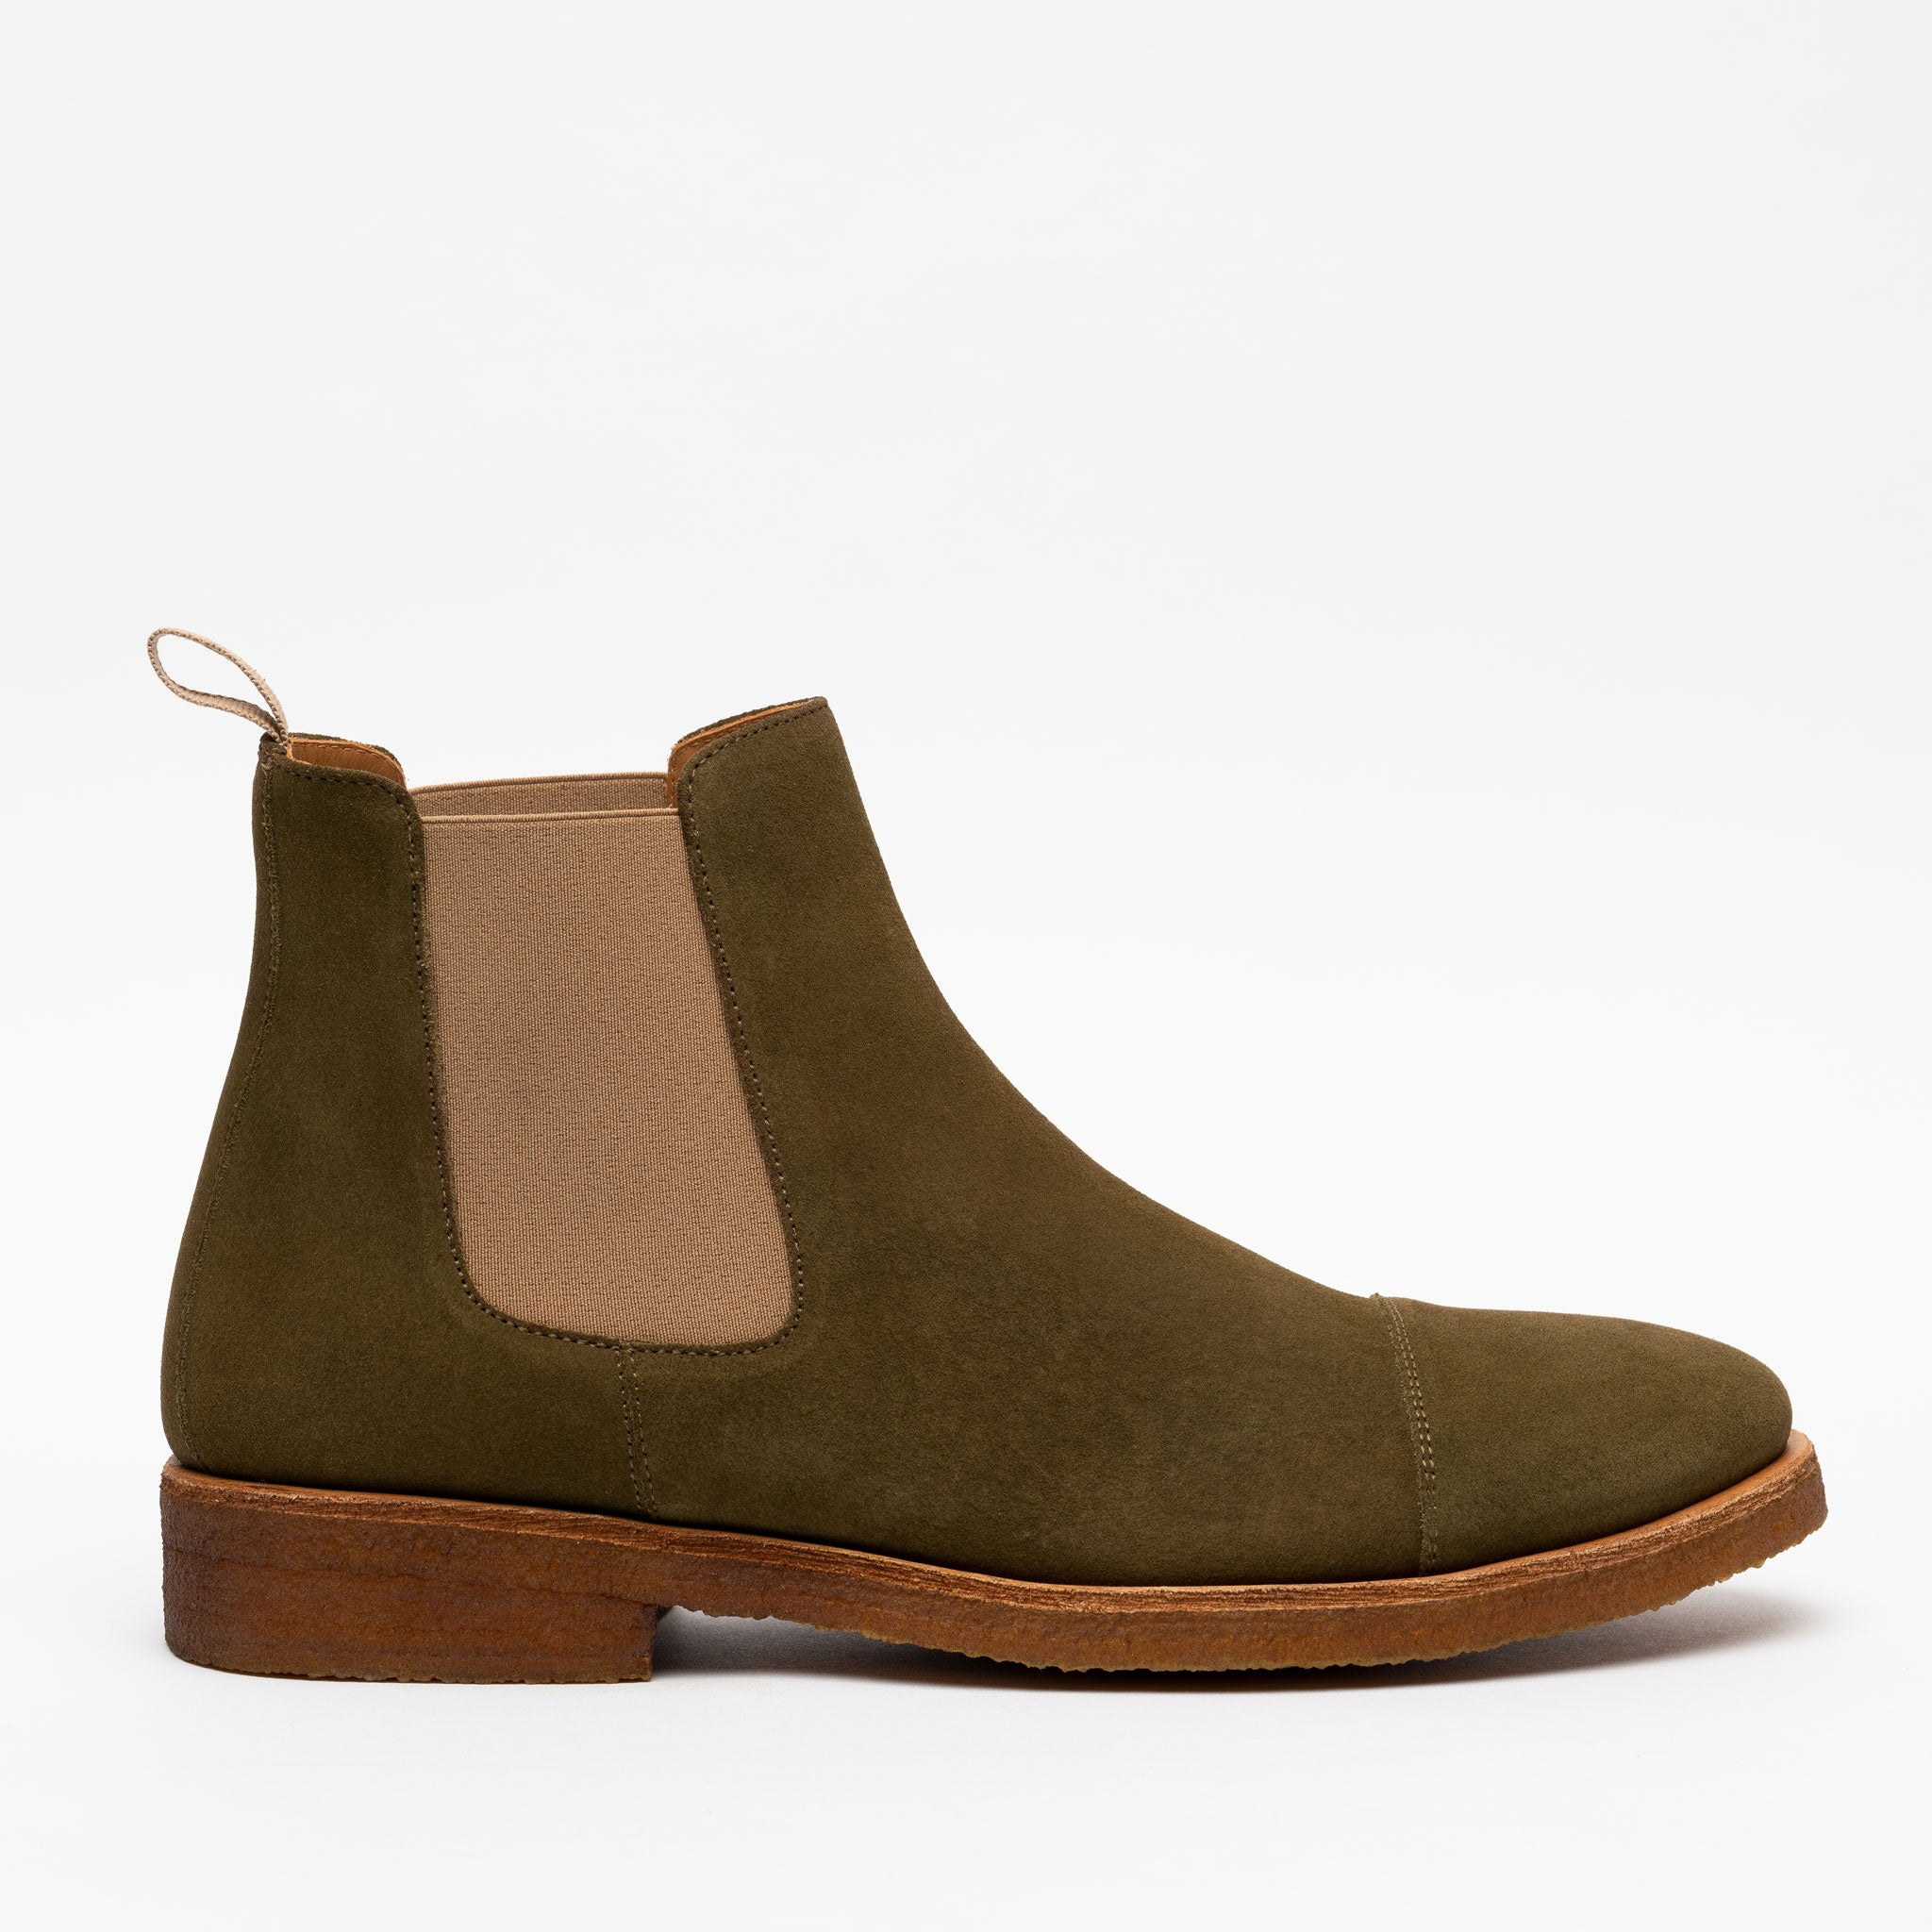 The Outback Boot in Olive